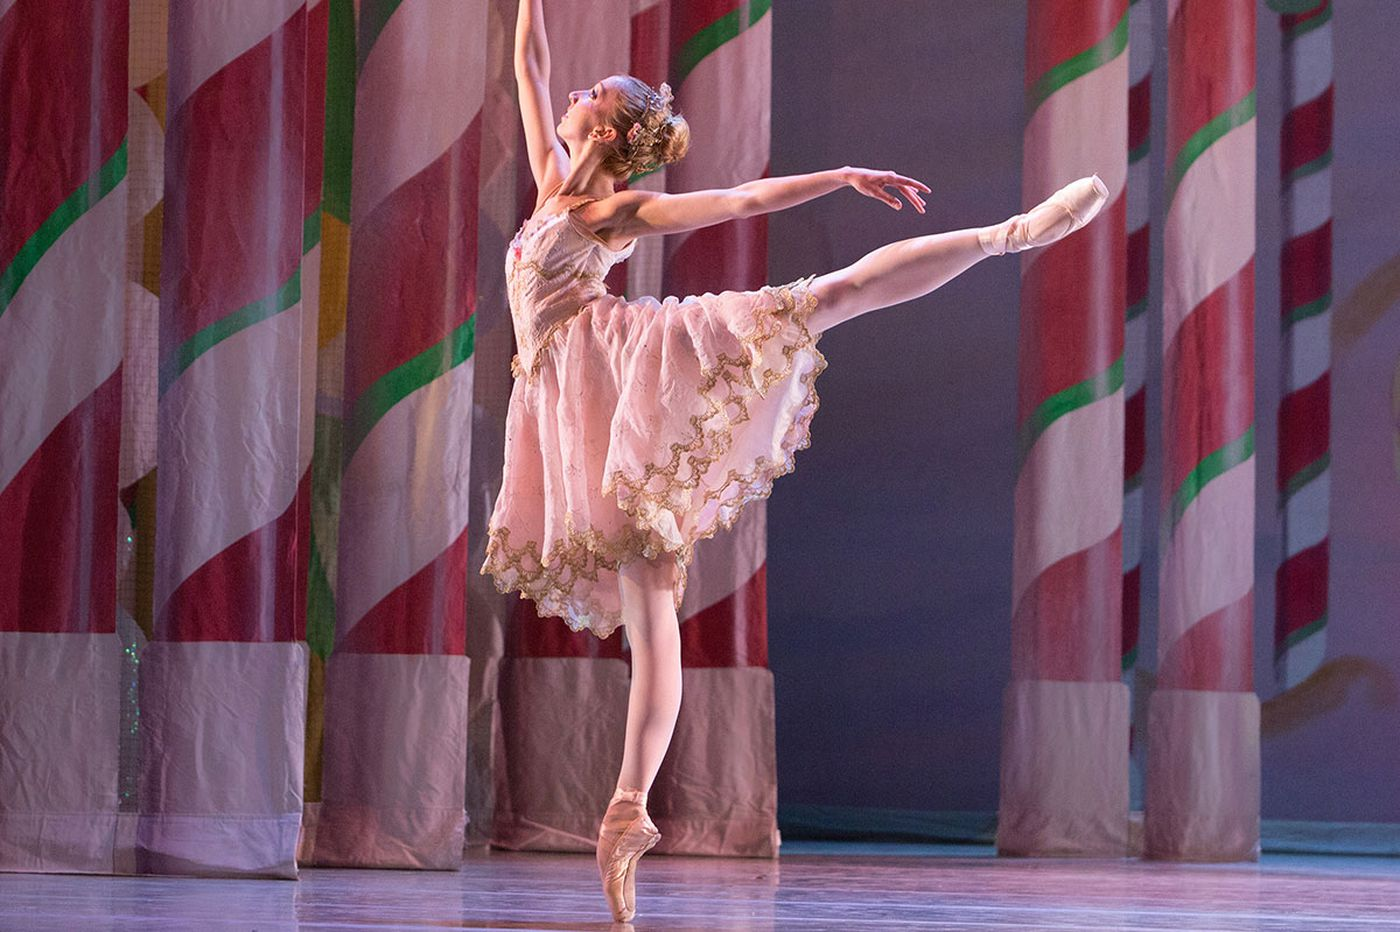 Pennsylvania Ballet fires the Sugar Plum Fairy